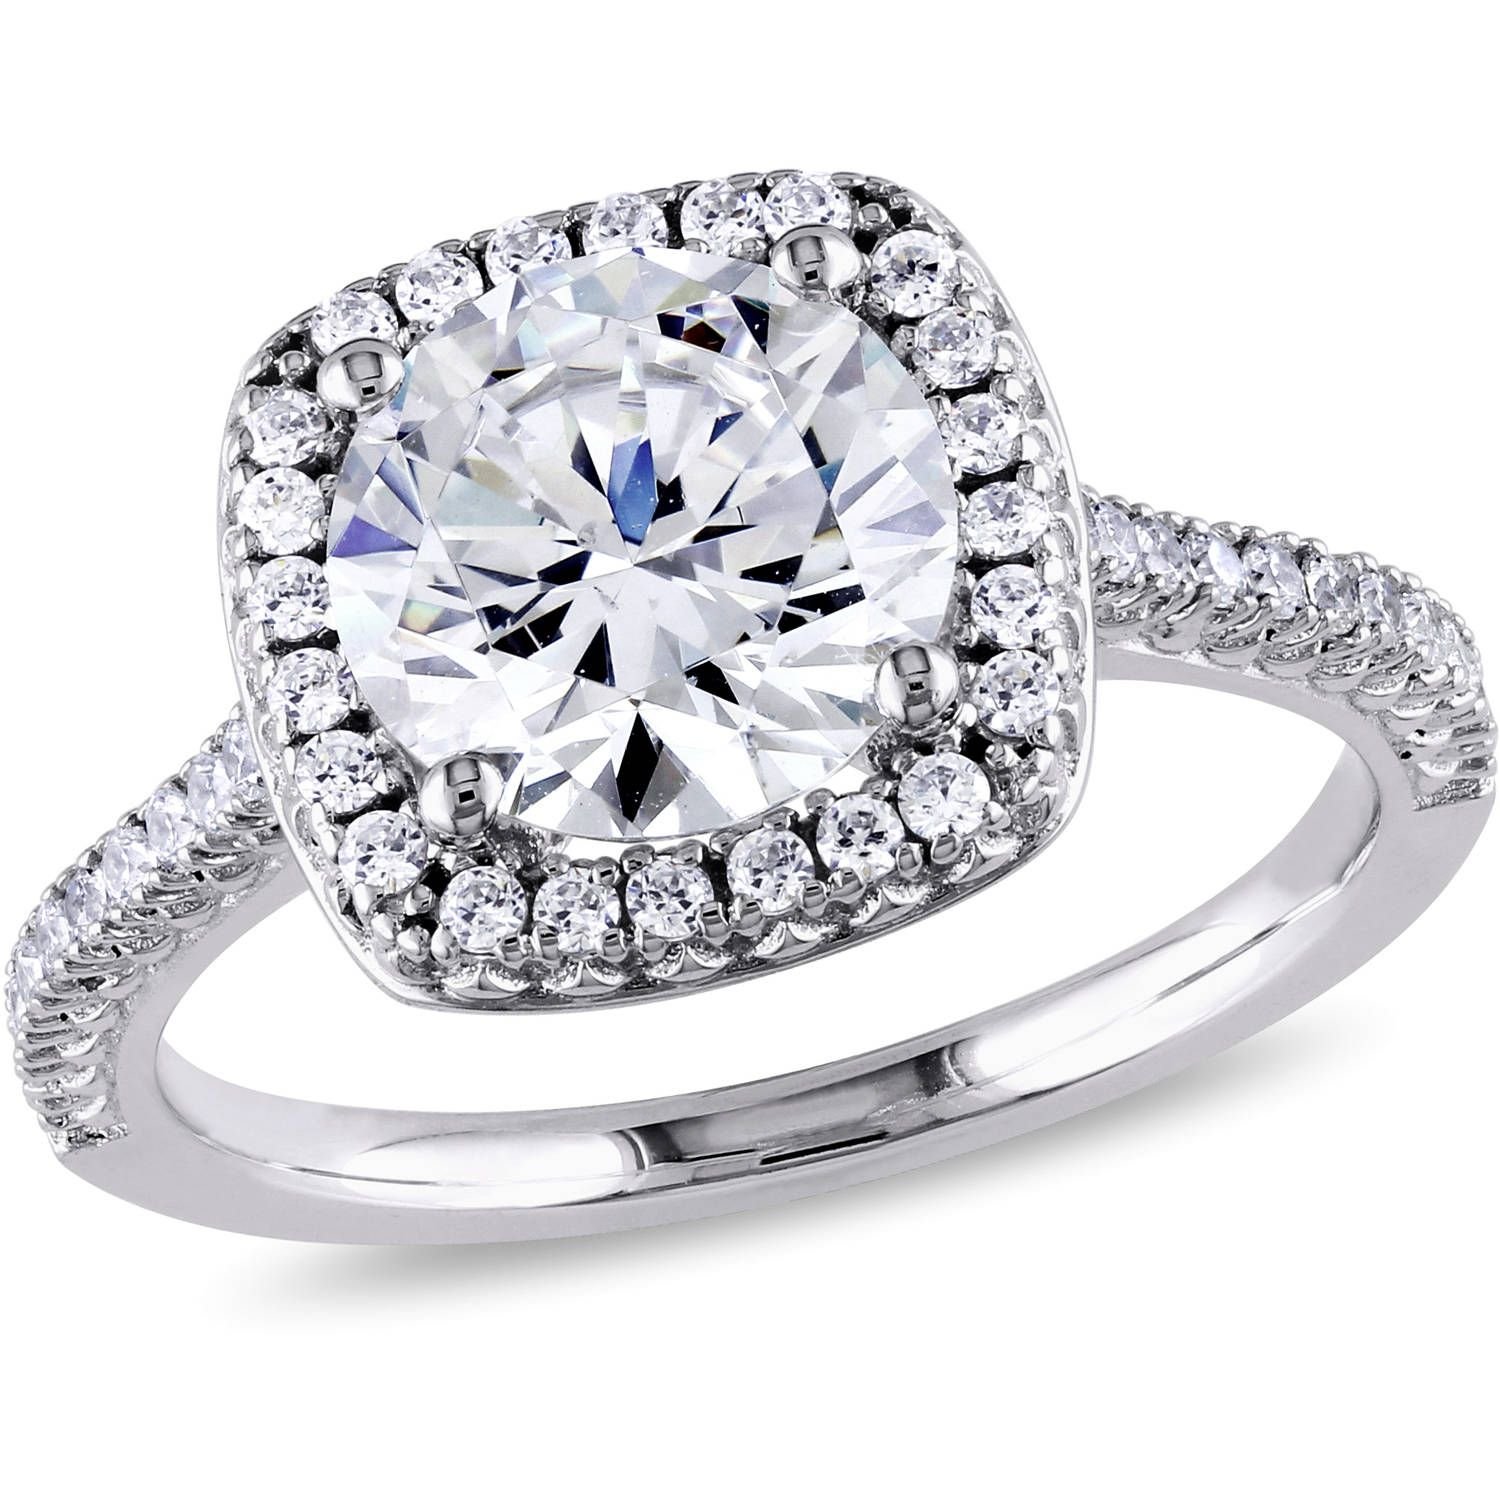 Jewelry Cubic zirconia engagement rings, White gold